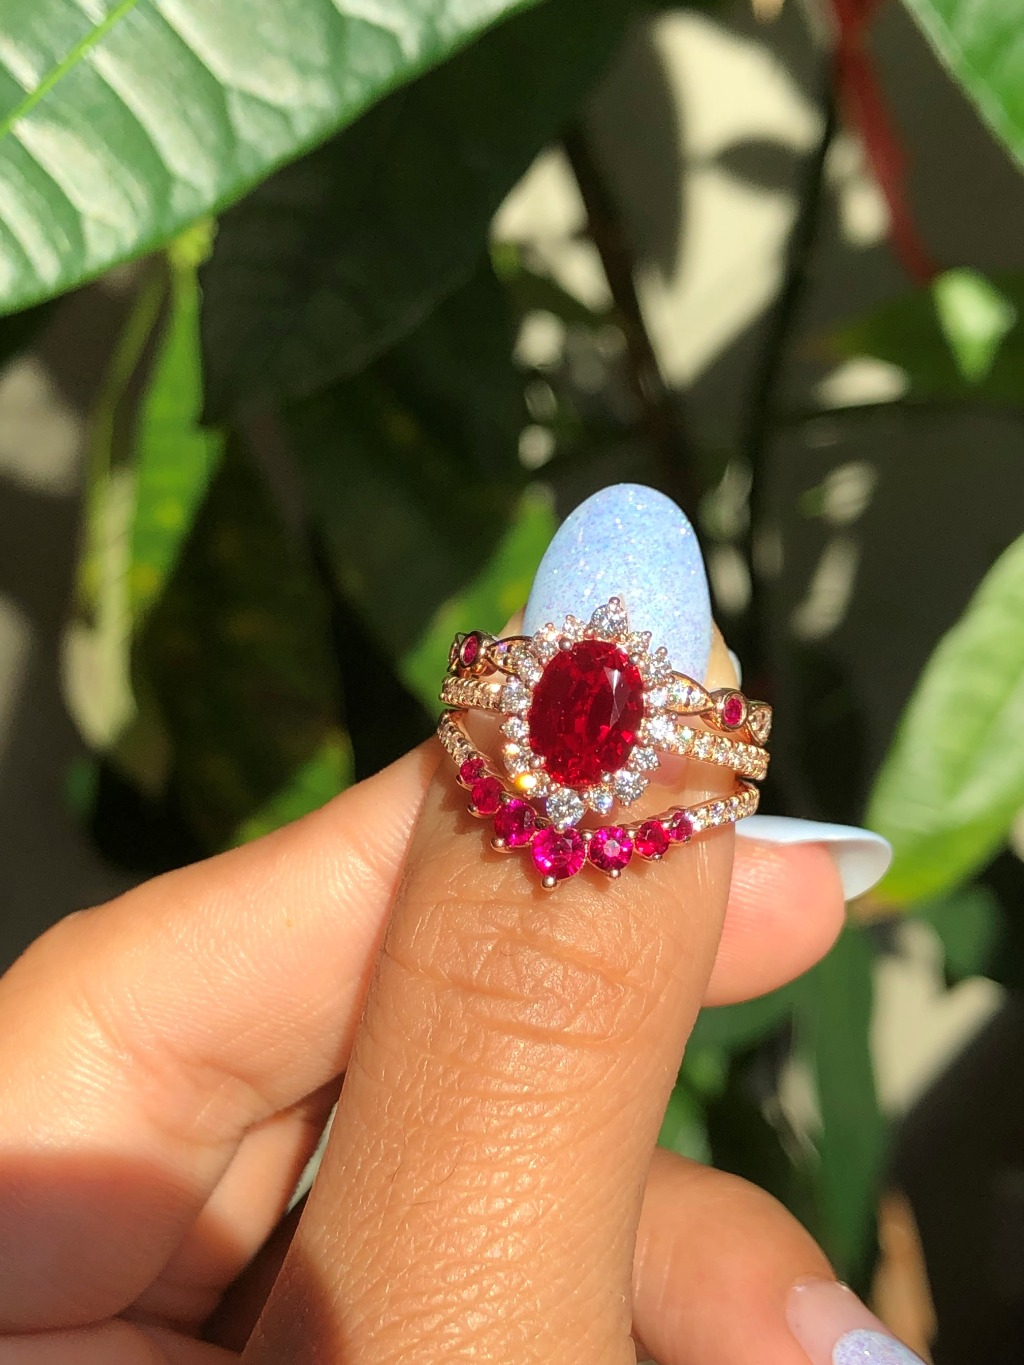 For all our Ruby Lovers here is your dream bridal set! This Ruby Bridal Set features our Oval Cut Tiara Halo Ruby Engagement Ring in